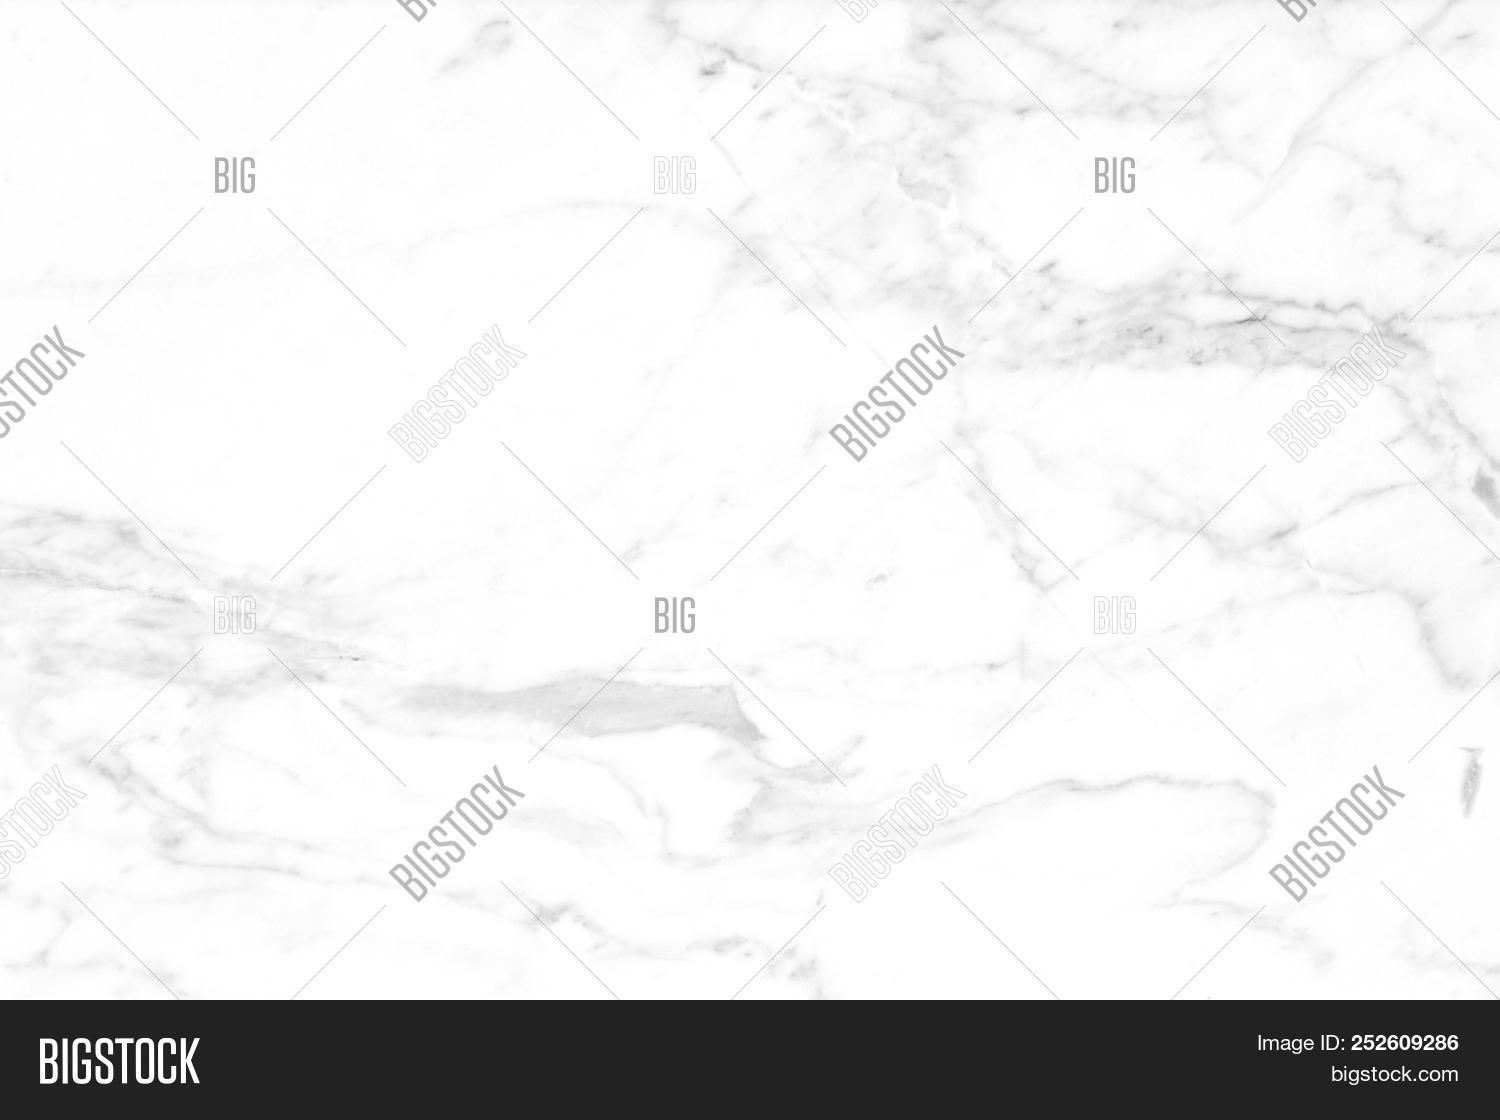 abstract,art,backdrop,background,bathroom,black,bright,closeup,construction,counter,decorative,design,desktop,effect,exterior,faded,floor,gray,ground,grunge,industry,interior,kitchen,light,marble,marbled,material,monochrome,natural,nature,overlay,pattern,photo,polish,quarry,real,retro,rock,seamless,slab,smooth,solid,stone,surface,template,texture,tile,vintage,wallpaper,white